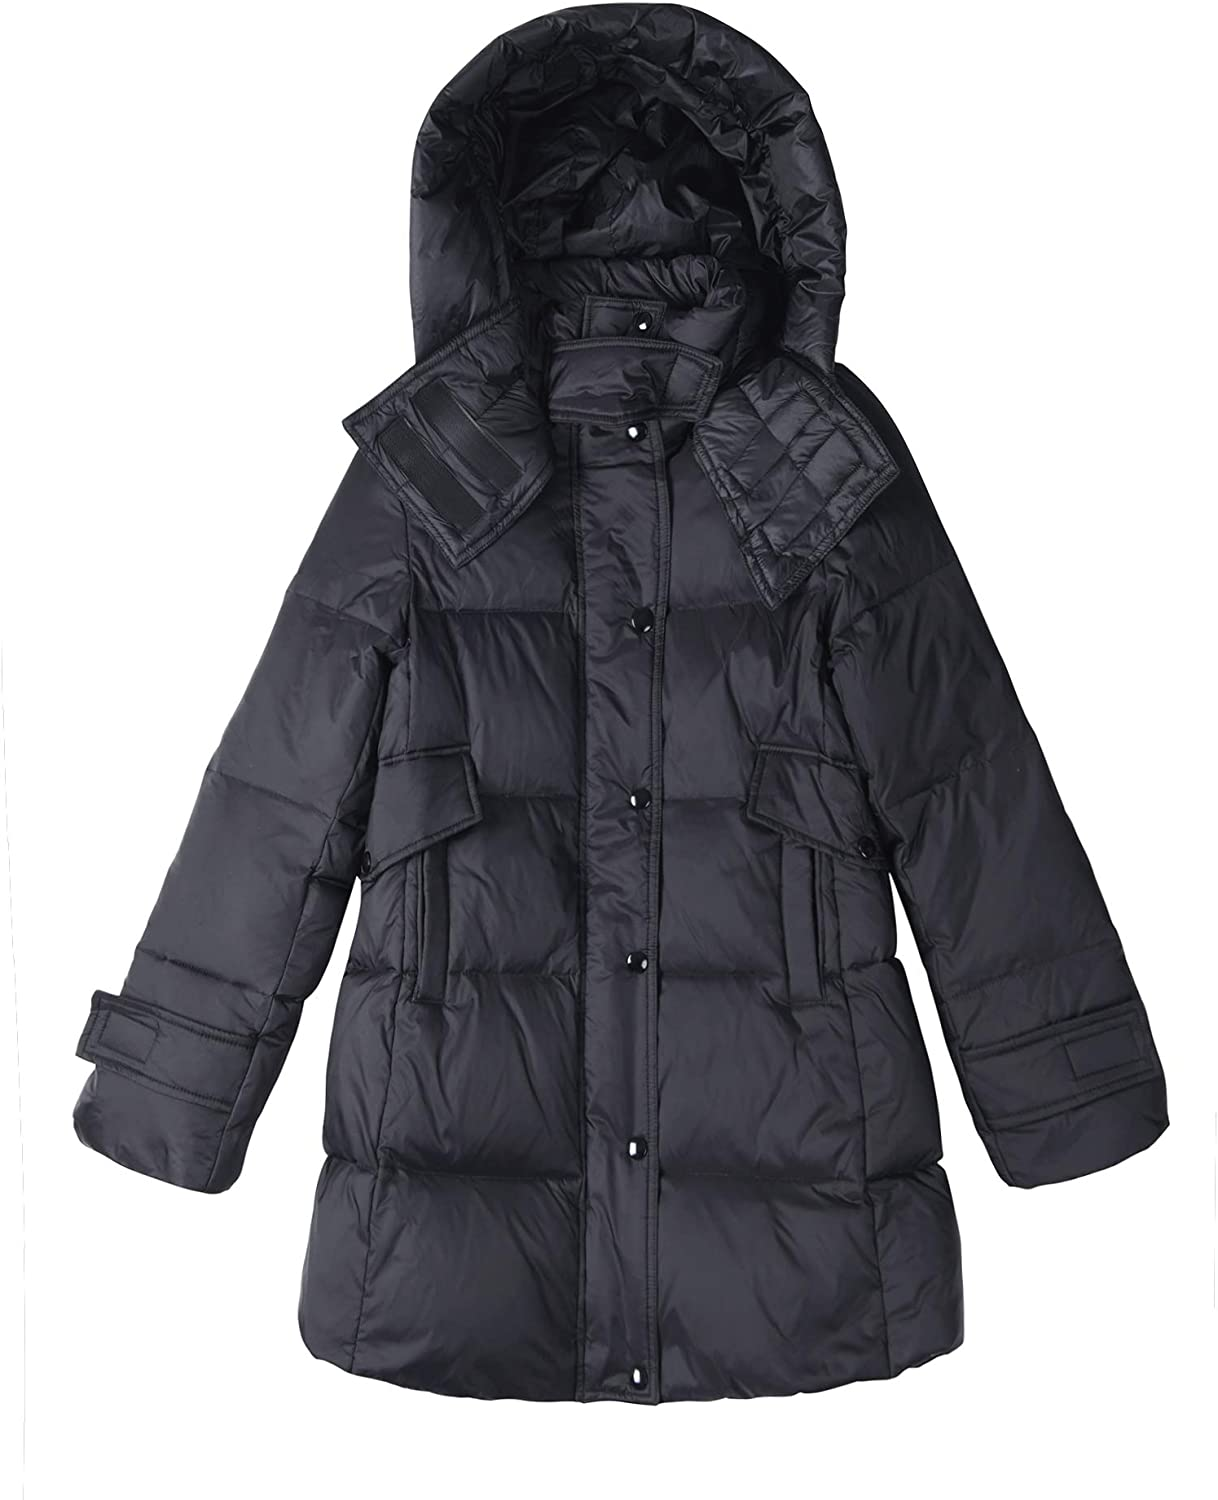 FlyGulls Womens Winter Coats Thickened Windproof Long Down Jacket with Hood